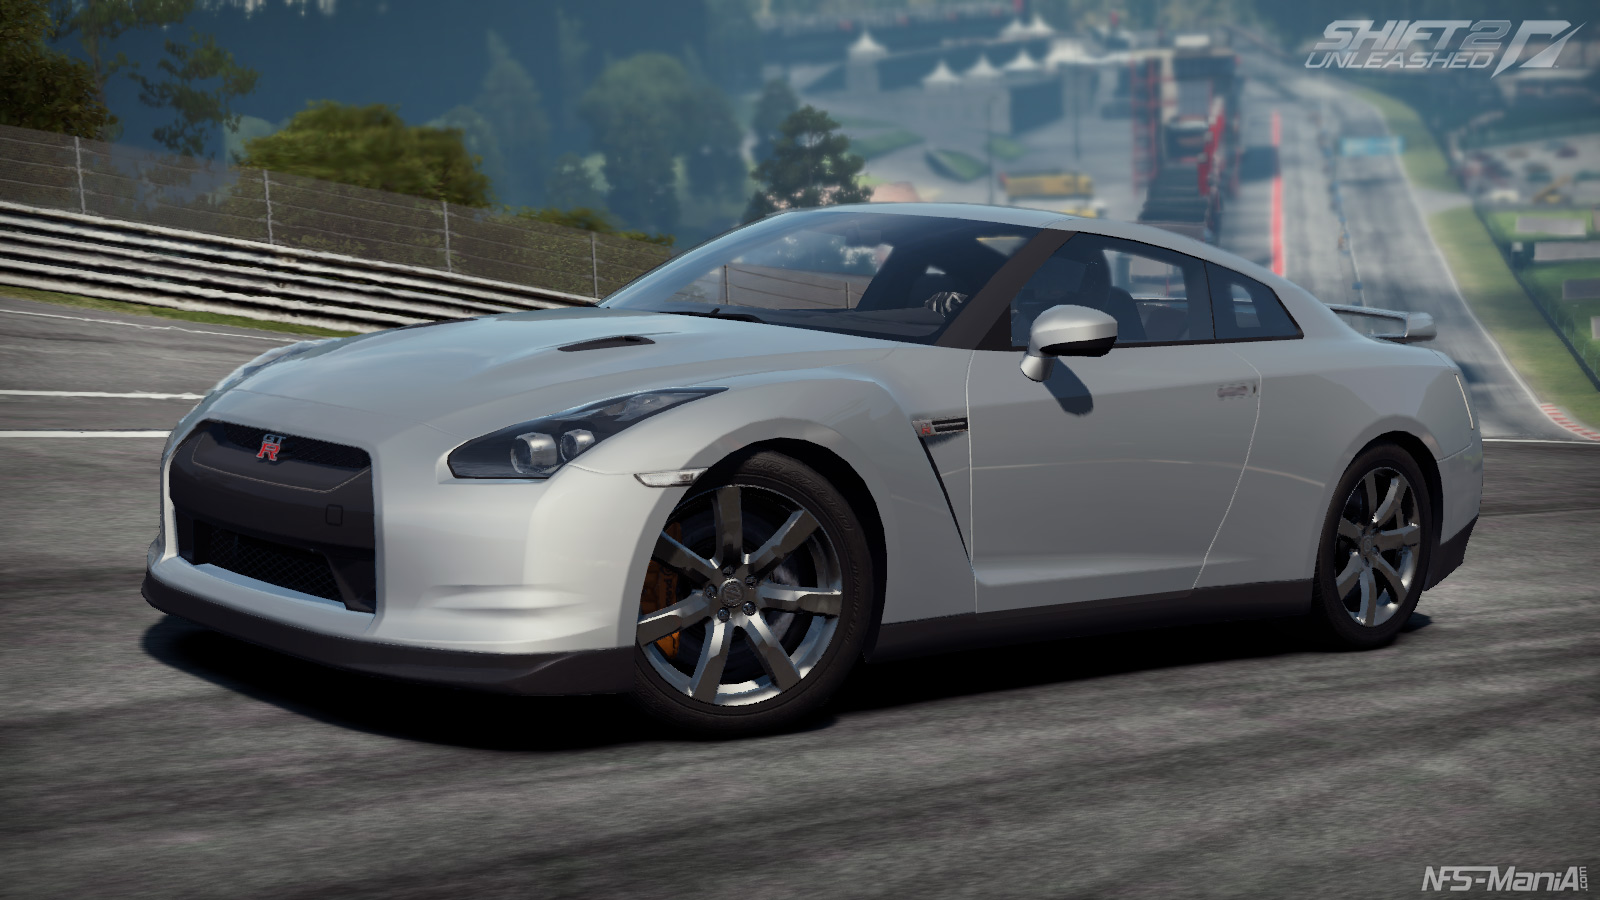 Need for Speed Shift 2 - Nissan Previews | VirtualR.net ...